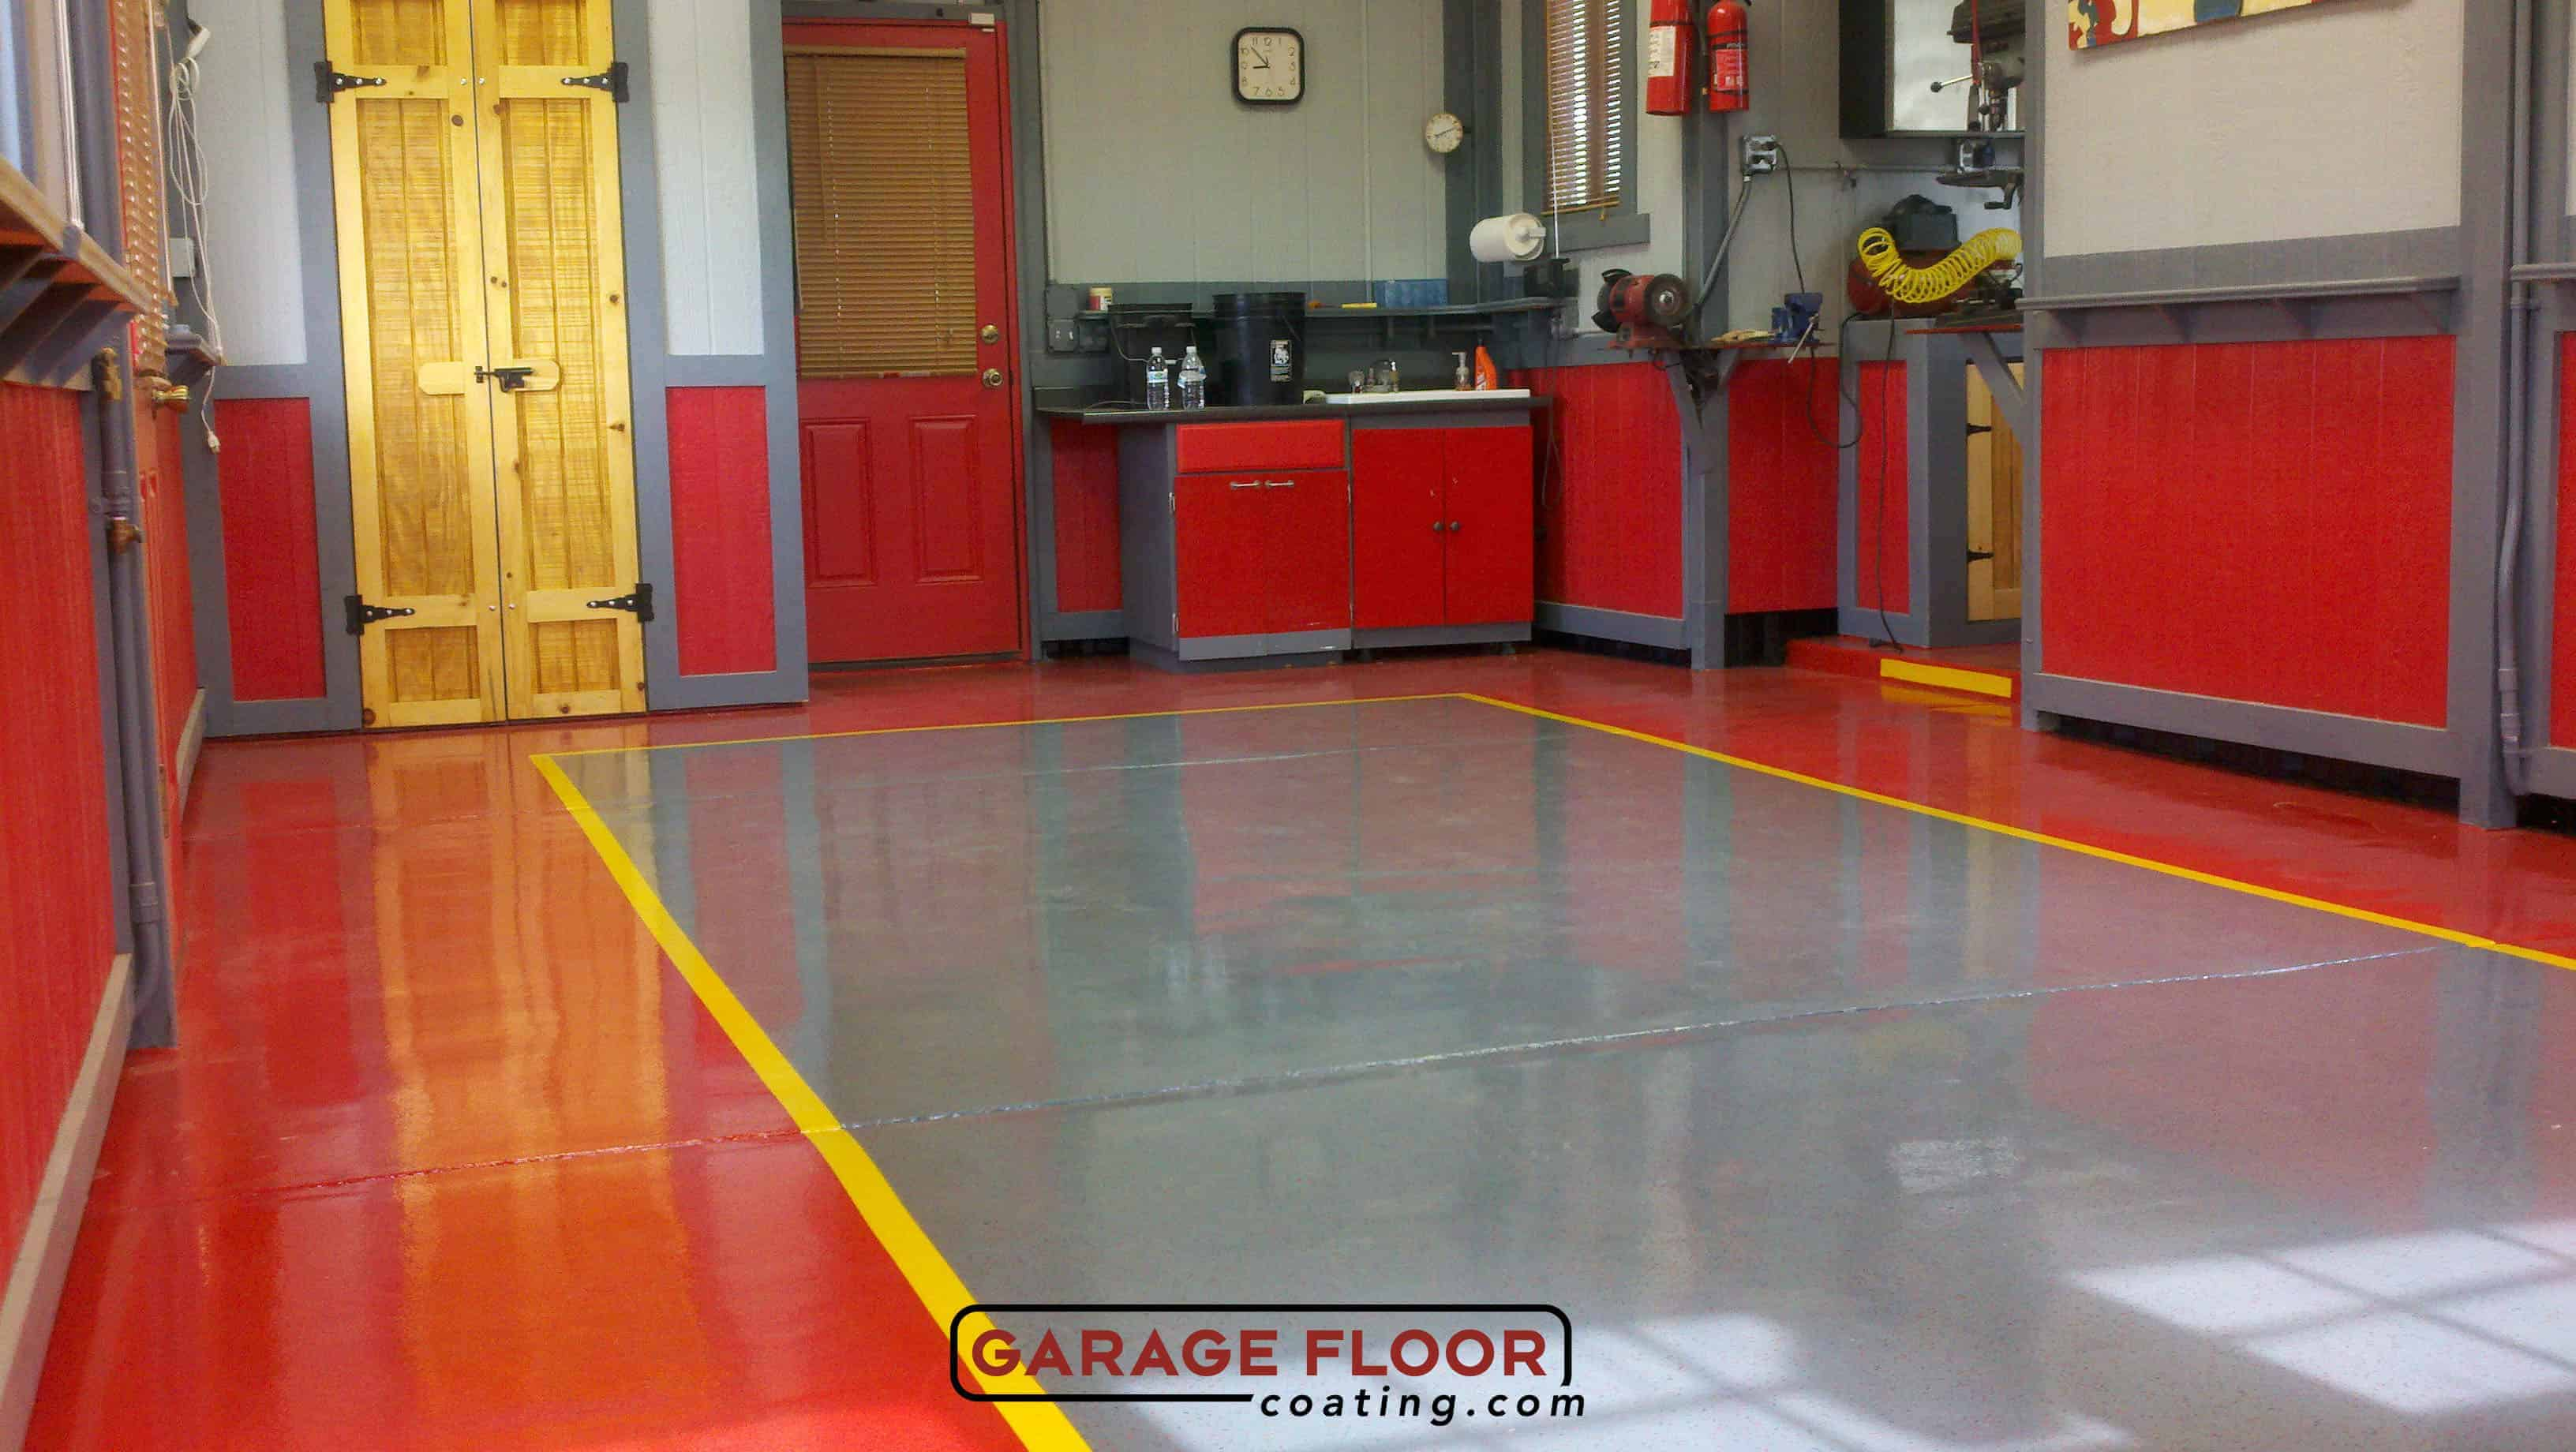 Garage Floor Coating Floors Polyaspartic